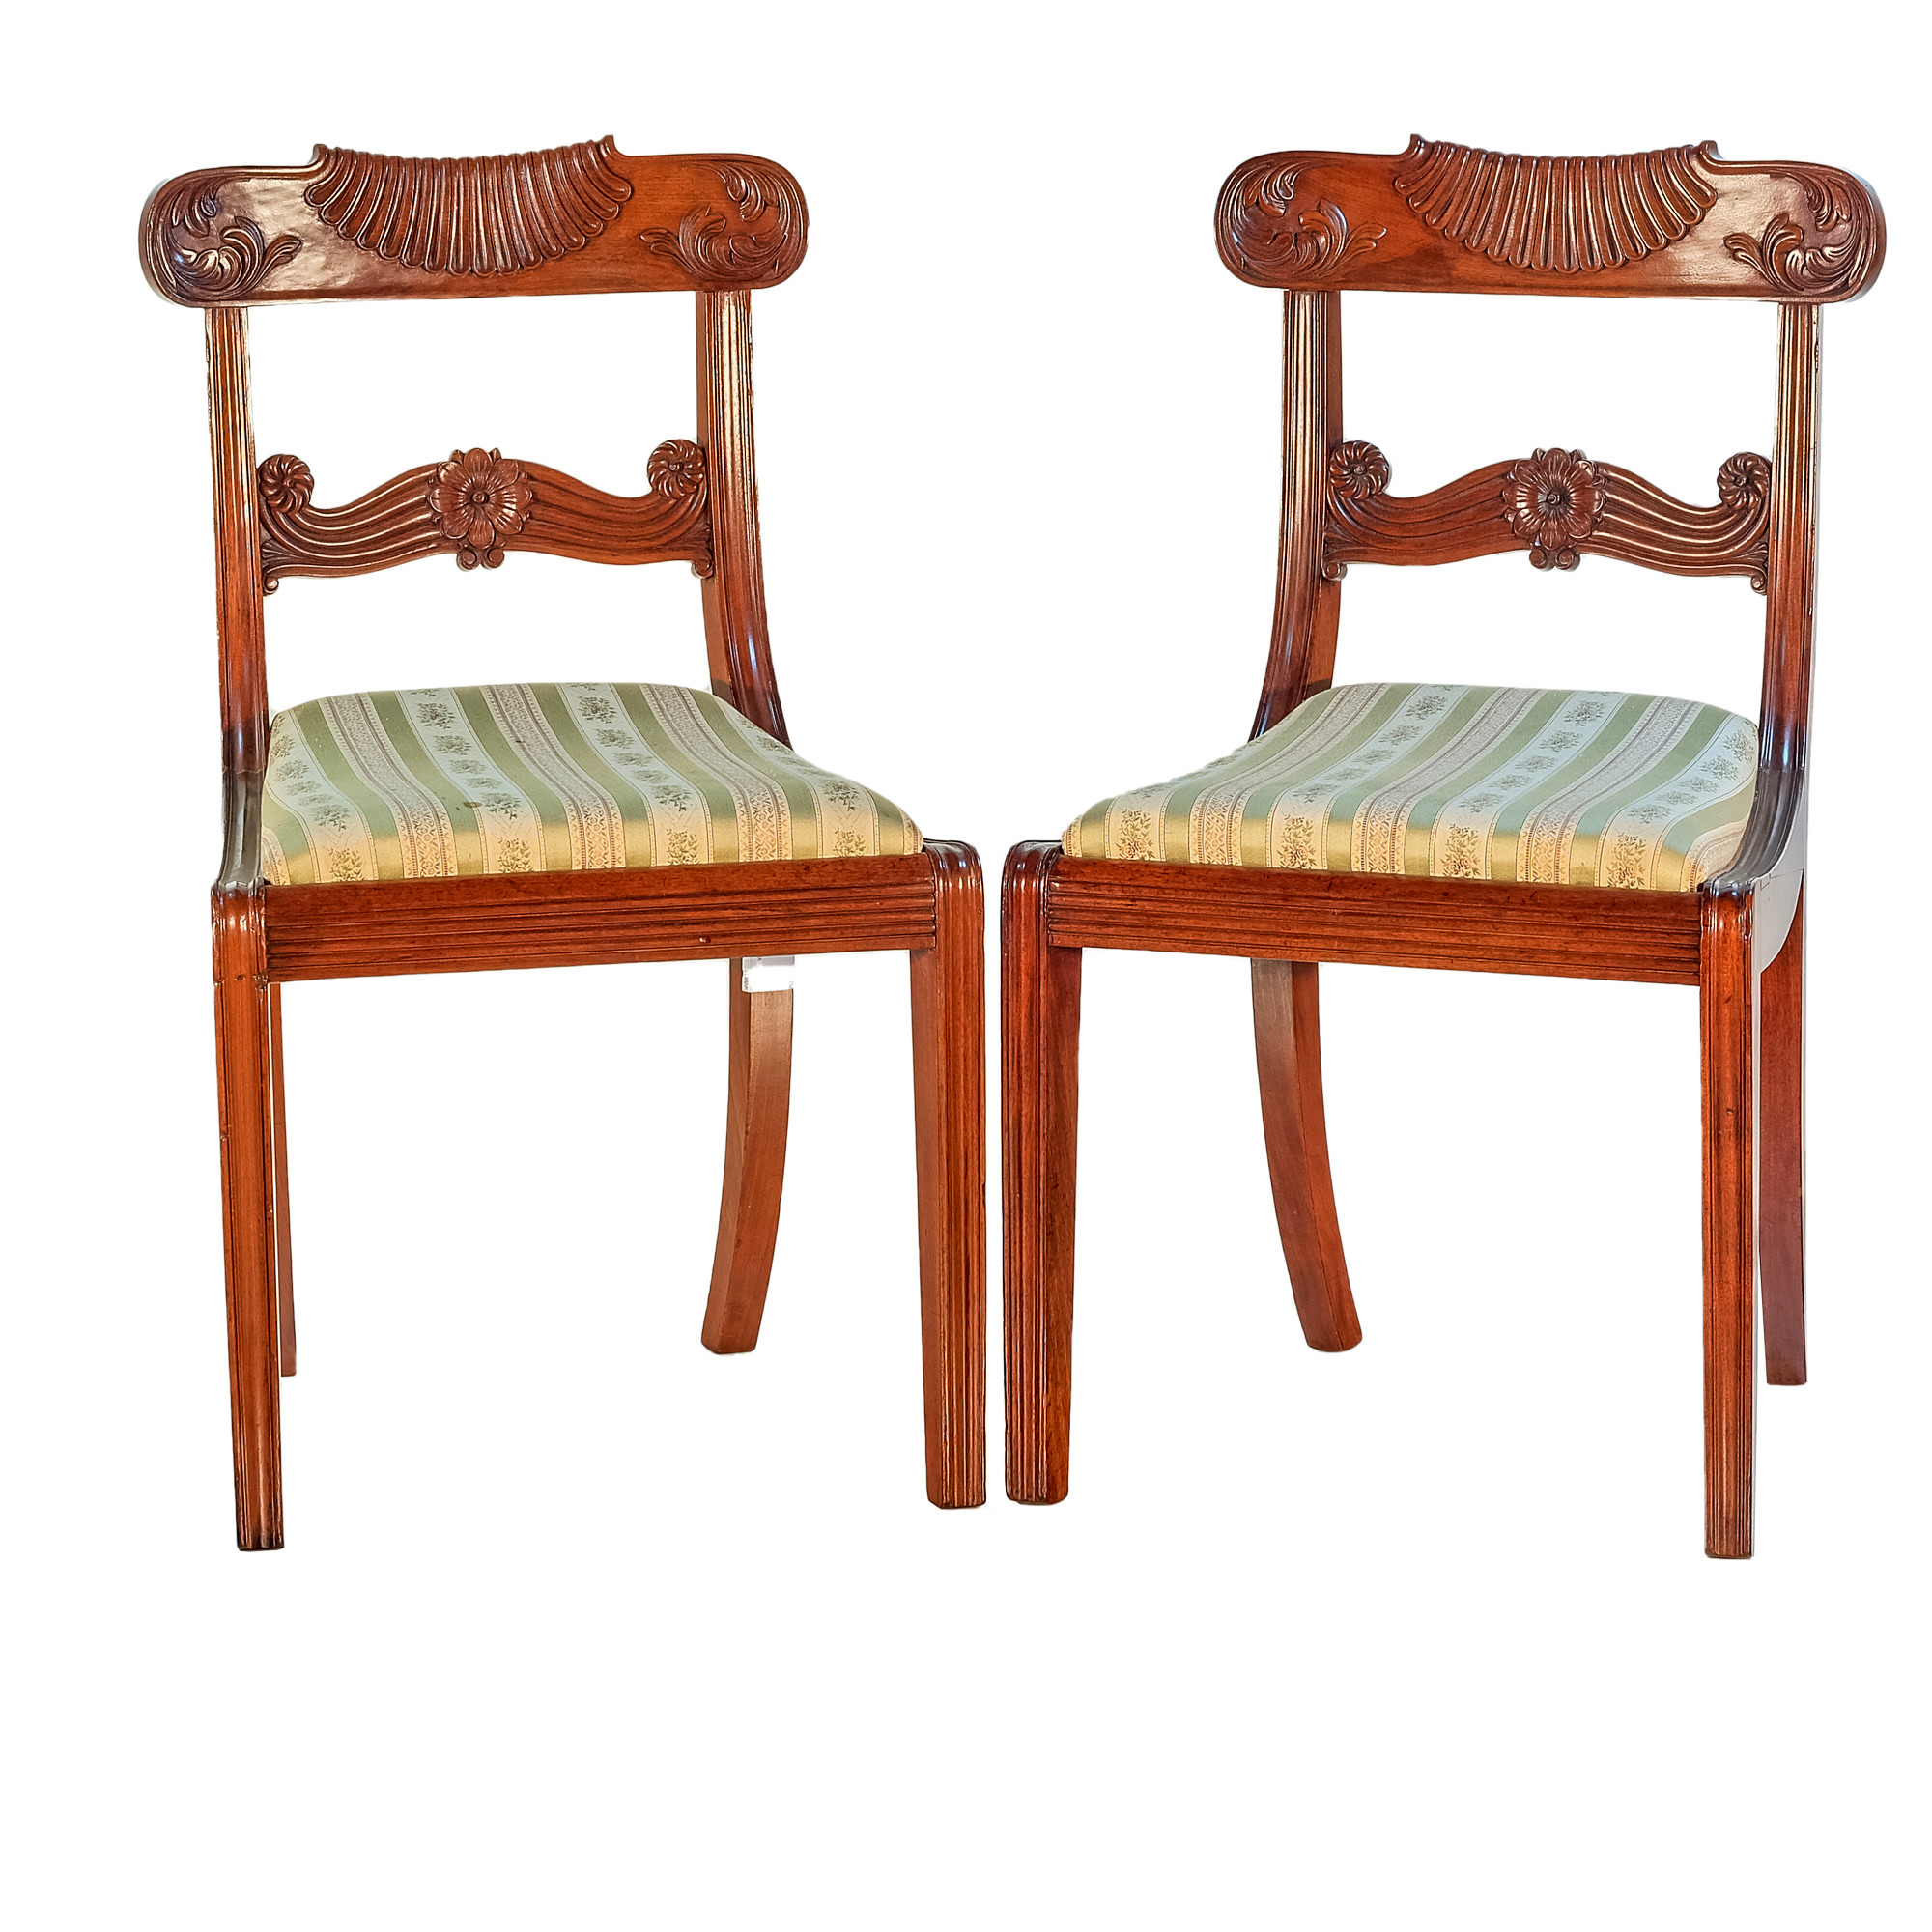 'Pair Regency Period Mahogany Dining Chairs Circa 1820'